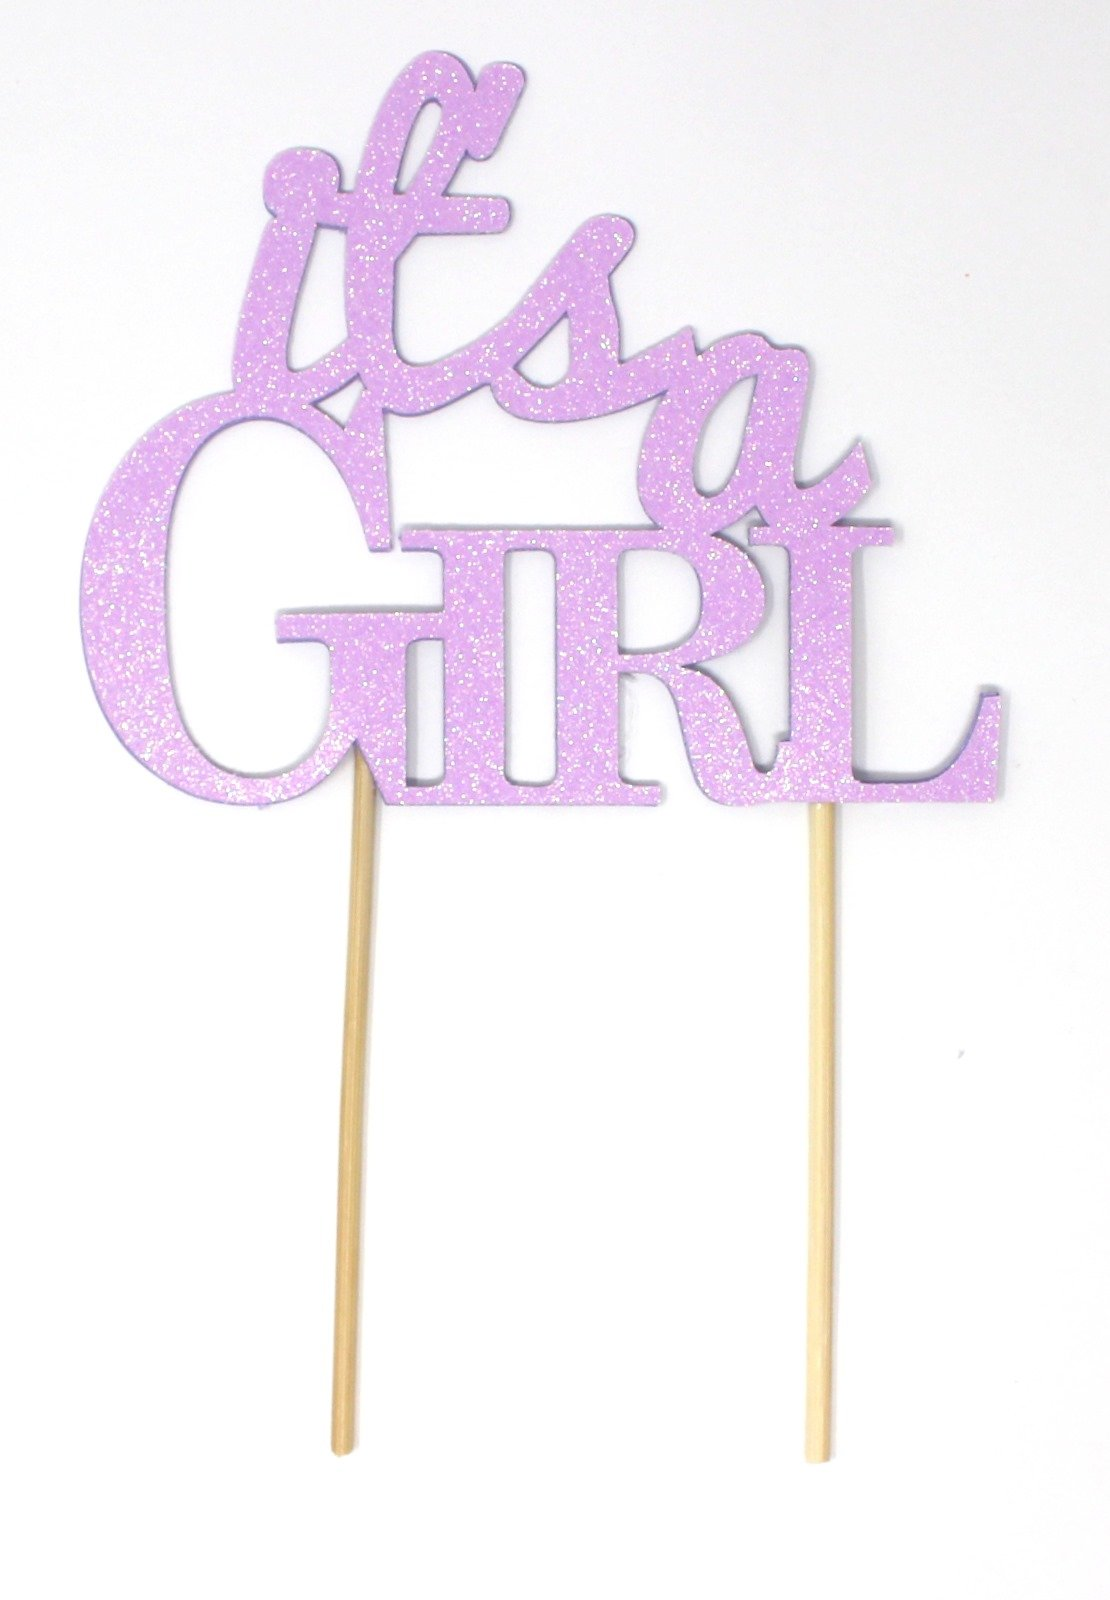 All About Details It's A Girl Cake Topper, 1pc, baby shower cake topper, Party Decor, baby shower decoration, Glitter Topper (Glitter Pastel Purple)